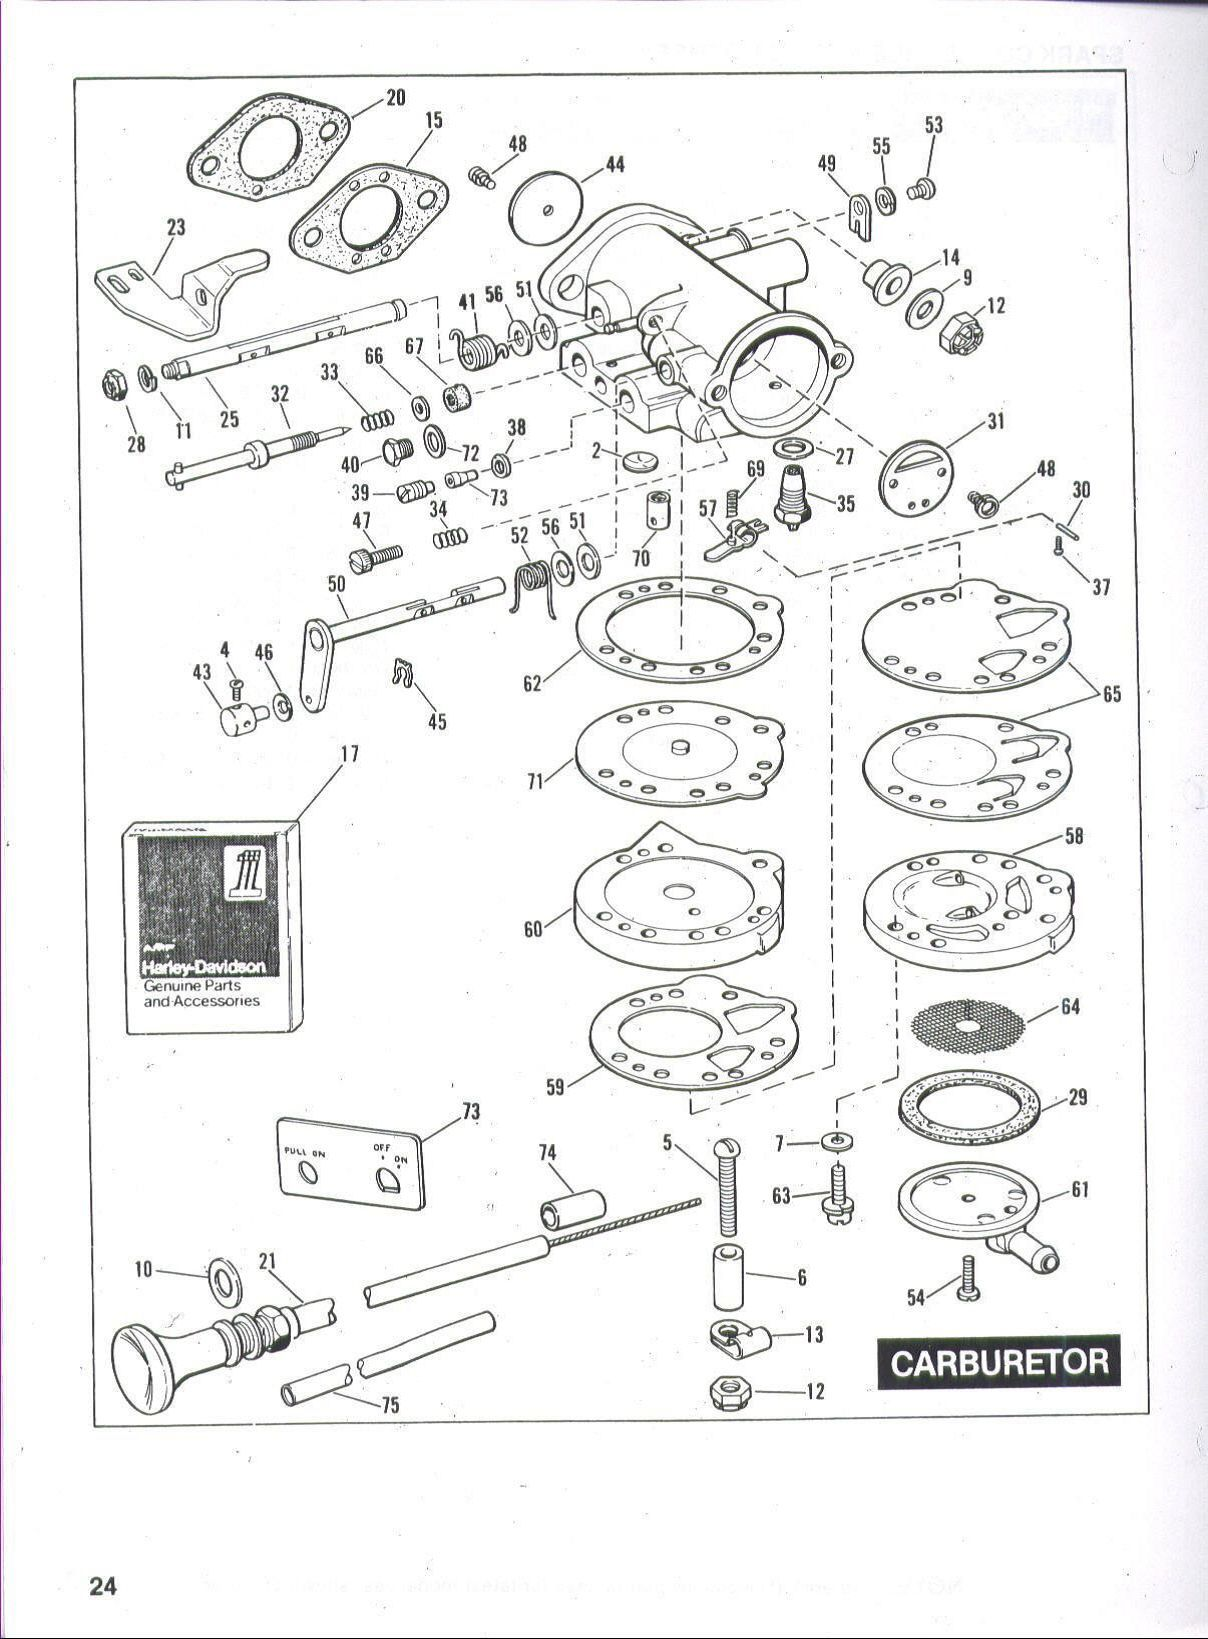 5176dbb44702a1adc4080edf7301936d harley davidson golf cart carburetor diagram utv stuff  at readyjetset.co